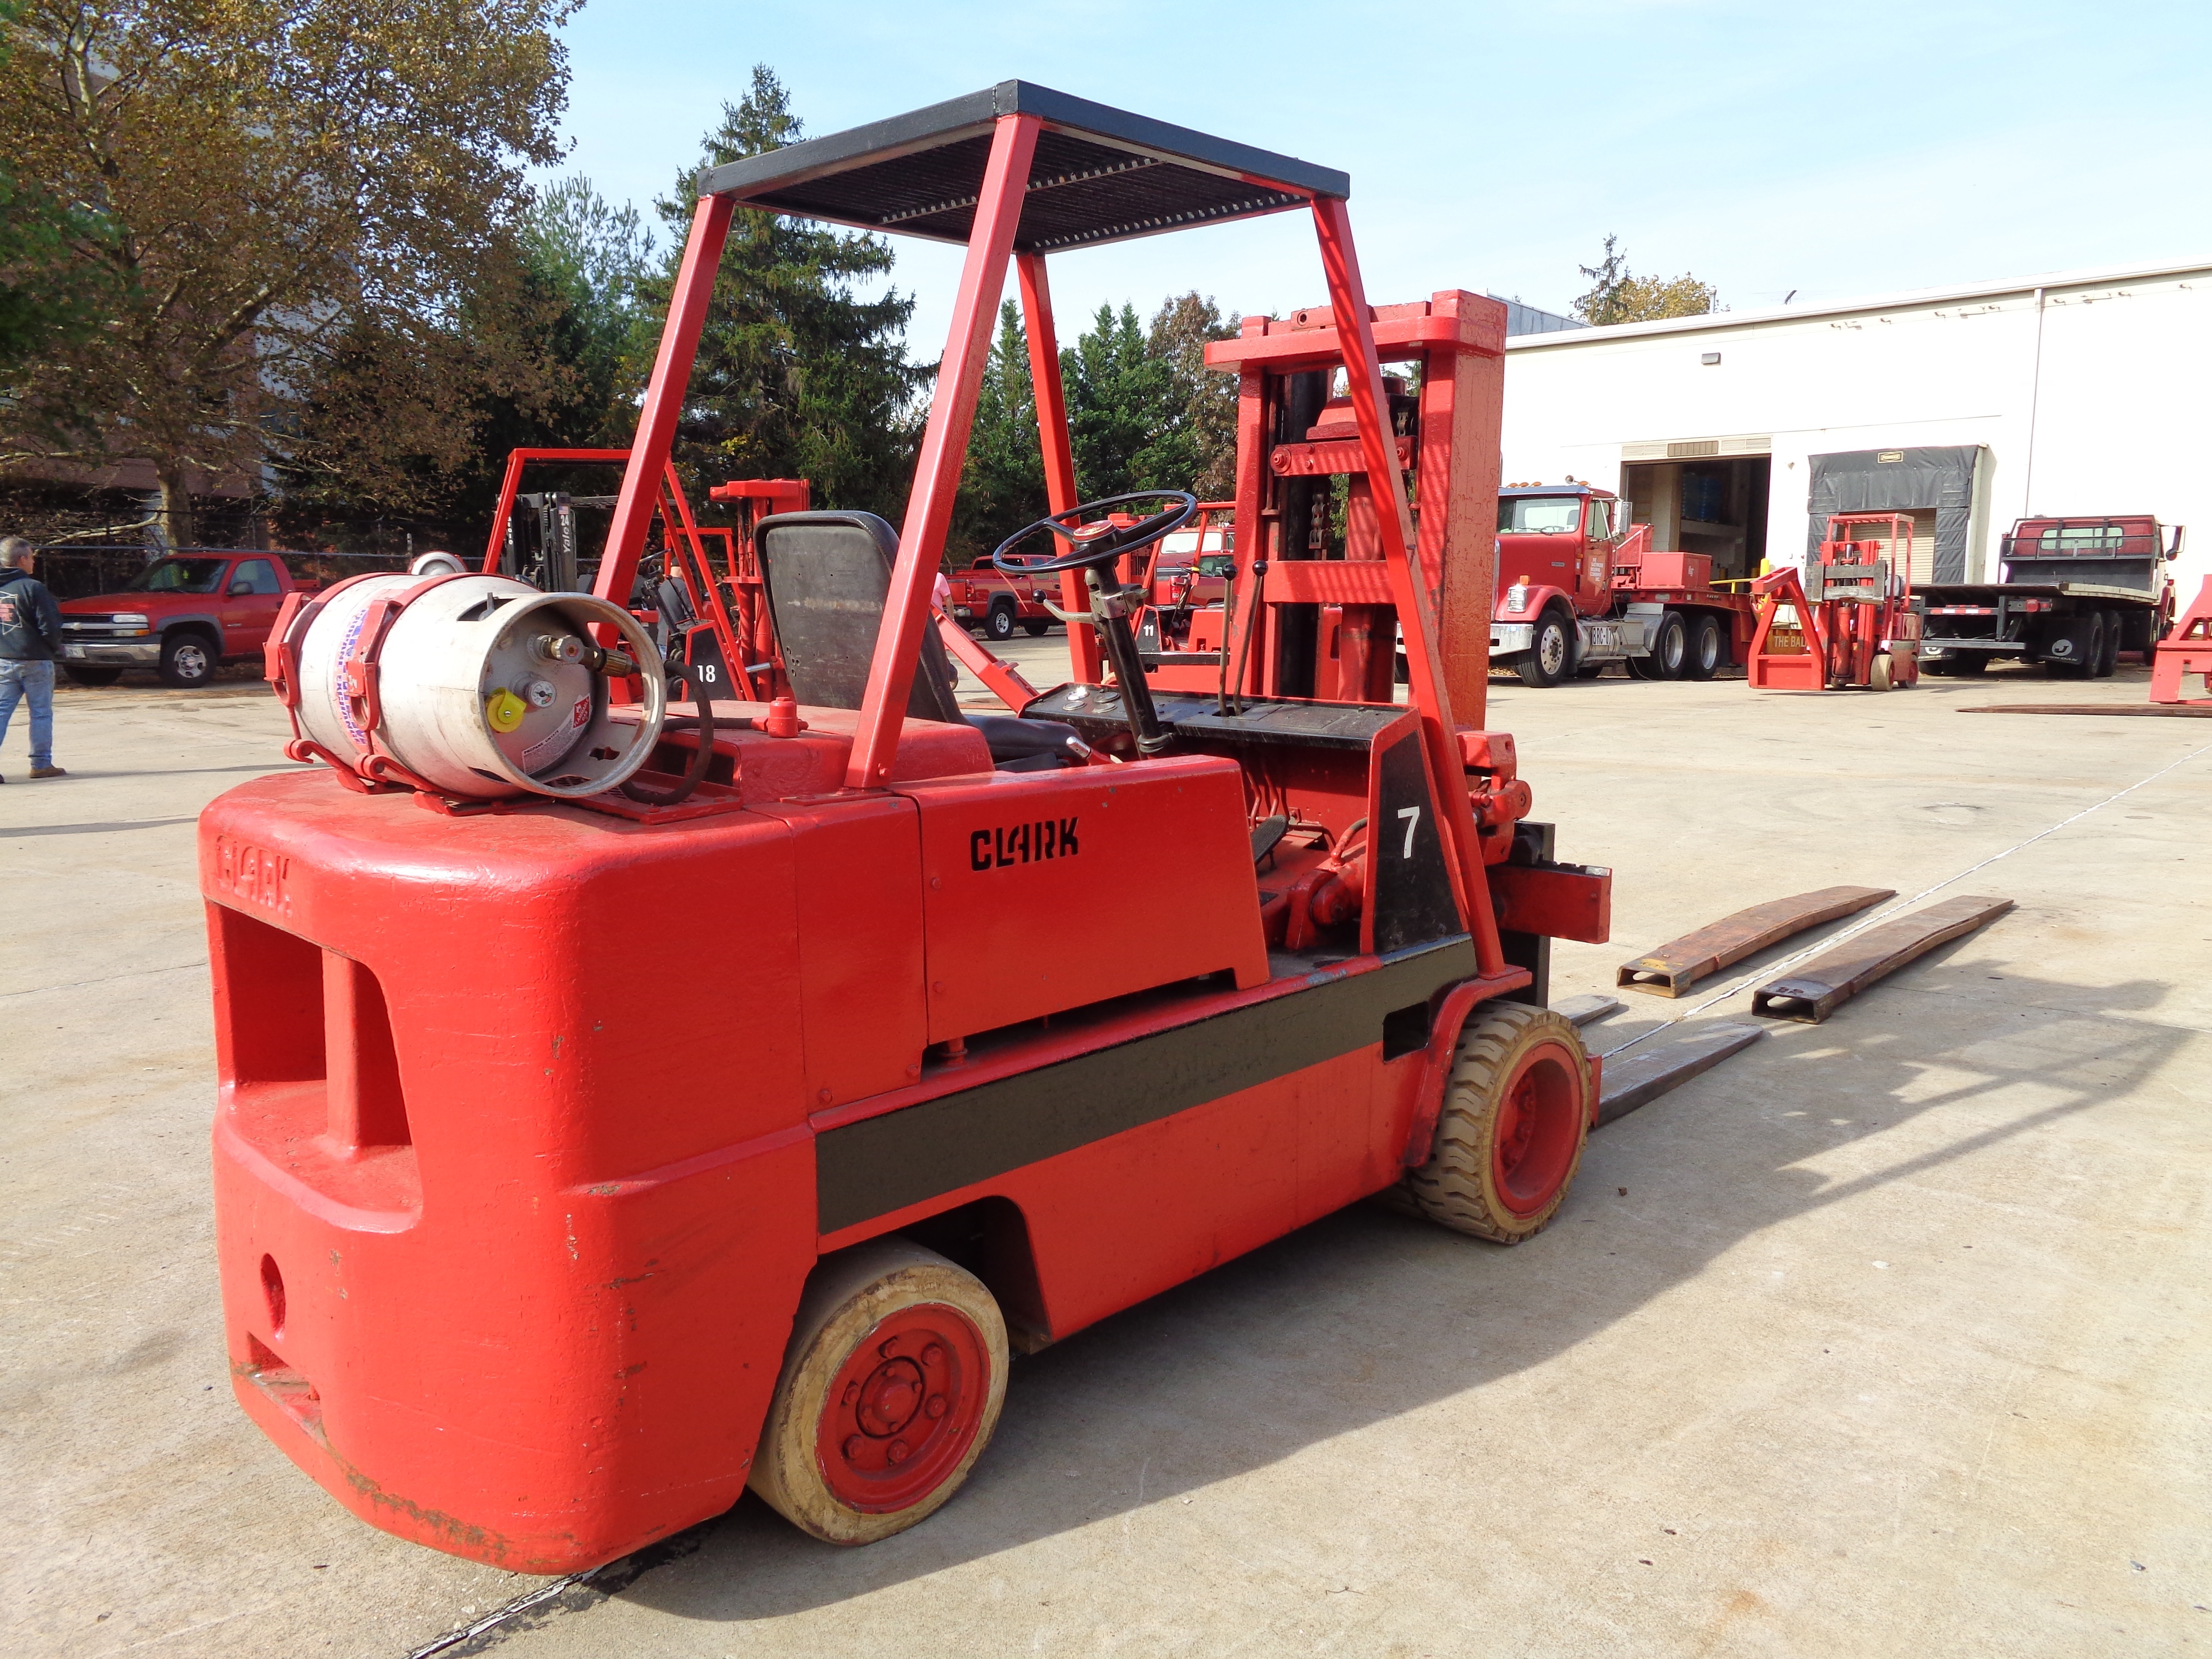 Clark C500-H120 Forklift- 12,000 lbs - Image 7 of 10